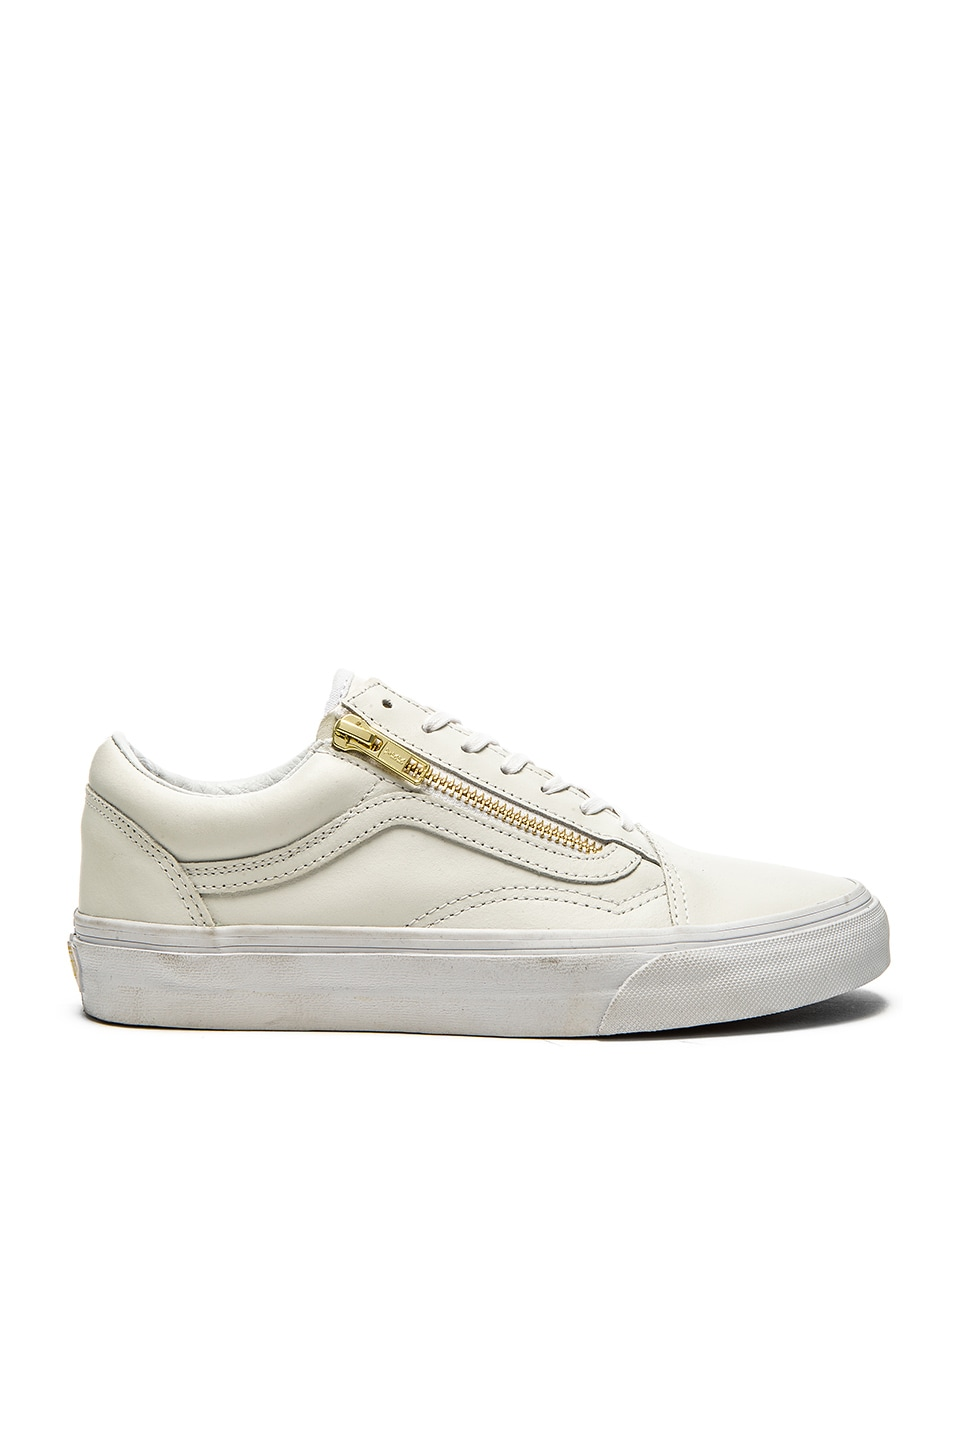 vans old skool zip white gold